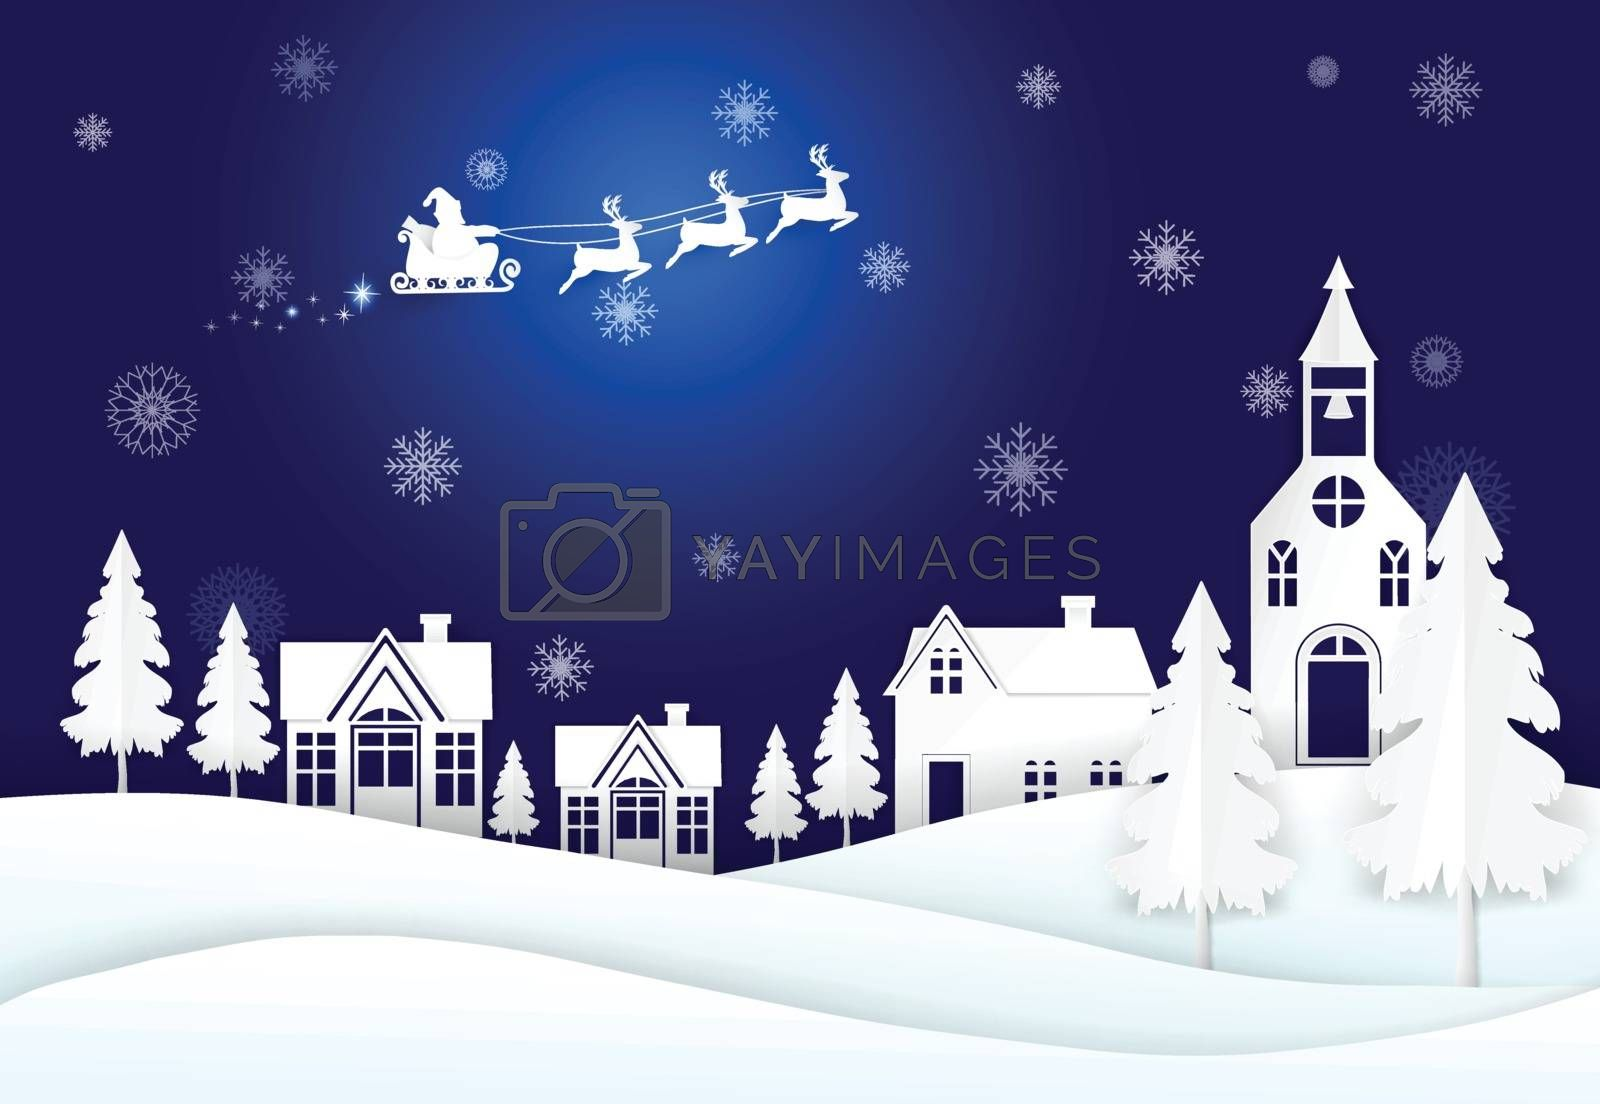 Santa on night sky and snowflake Winter background. Christmas season paper art, paper craft, paper cut style illustration